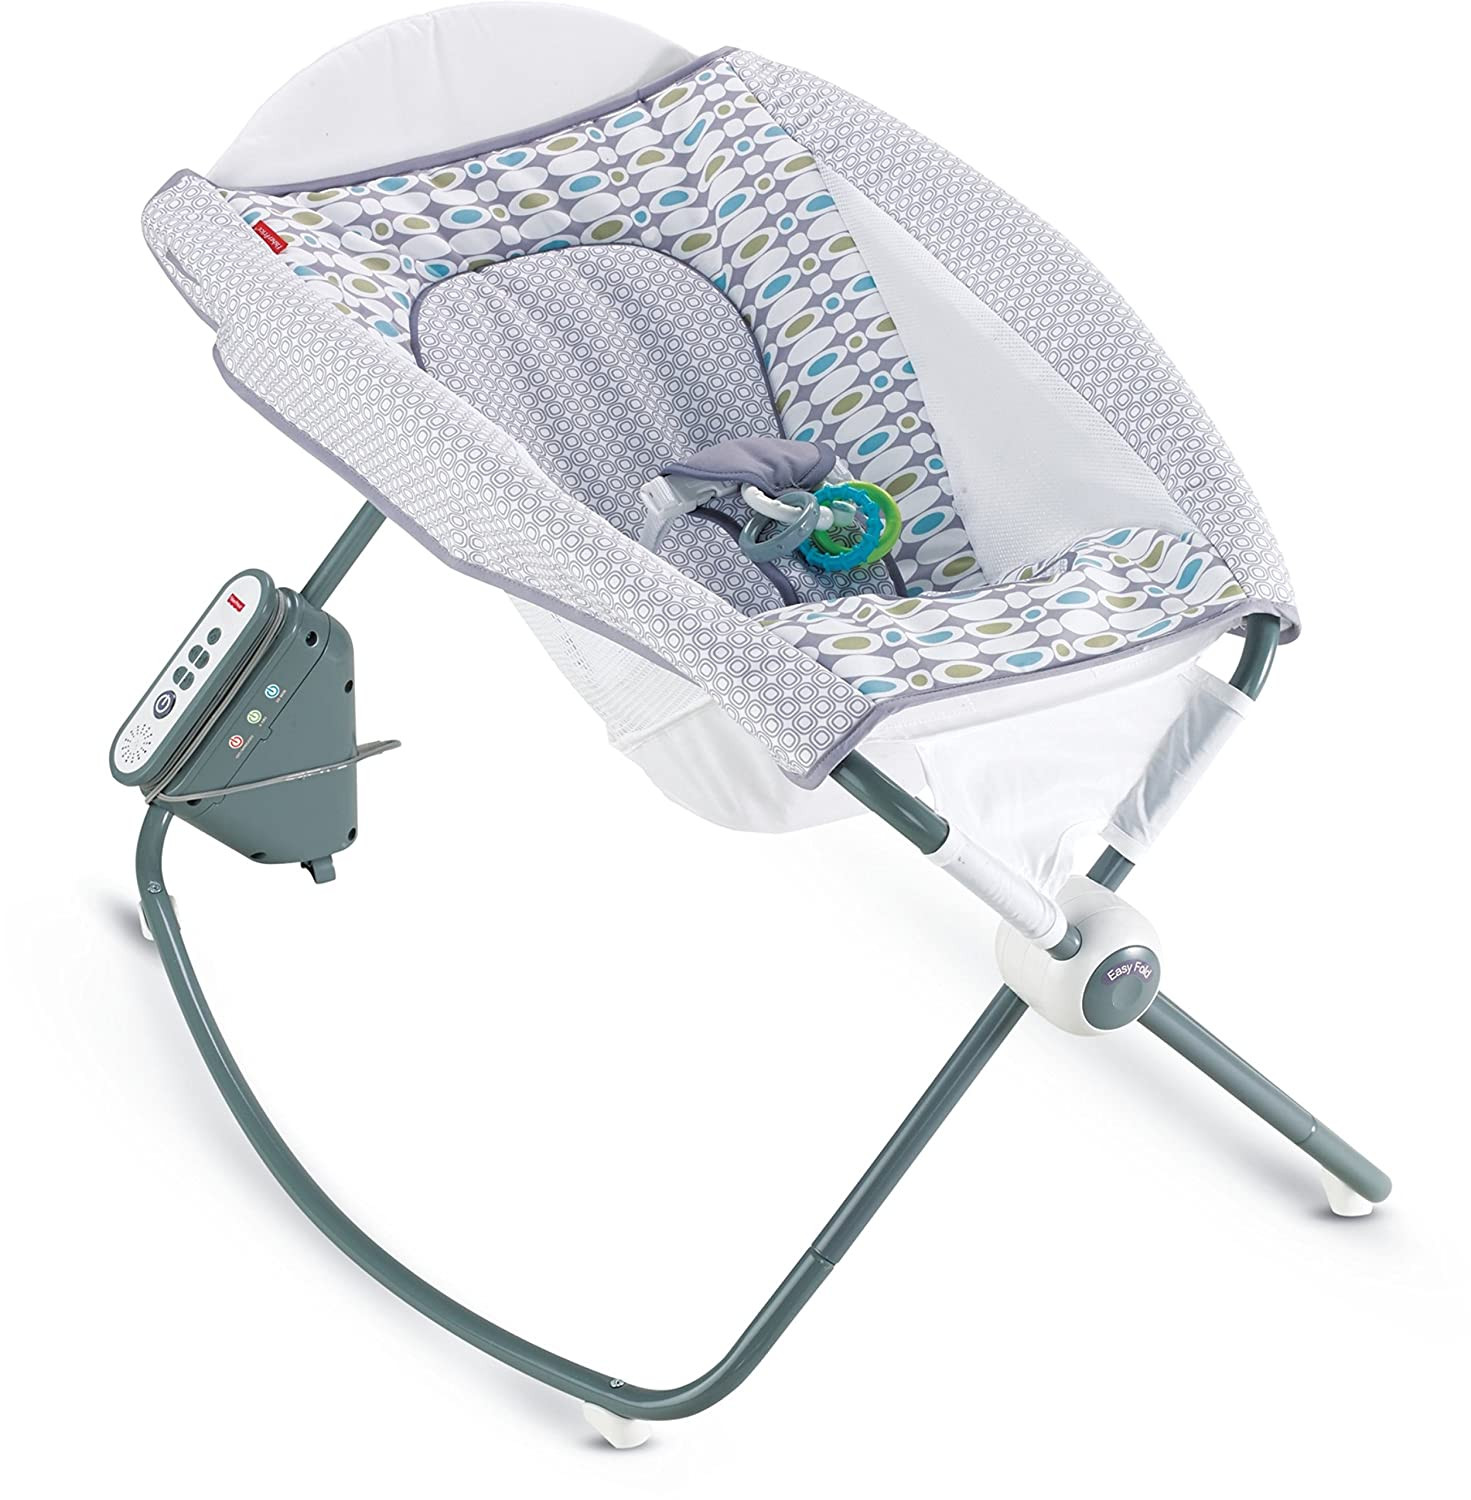 Fisher-Price Auto Rock 'n Play Sleeper Bassinet